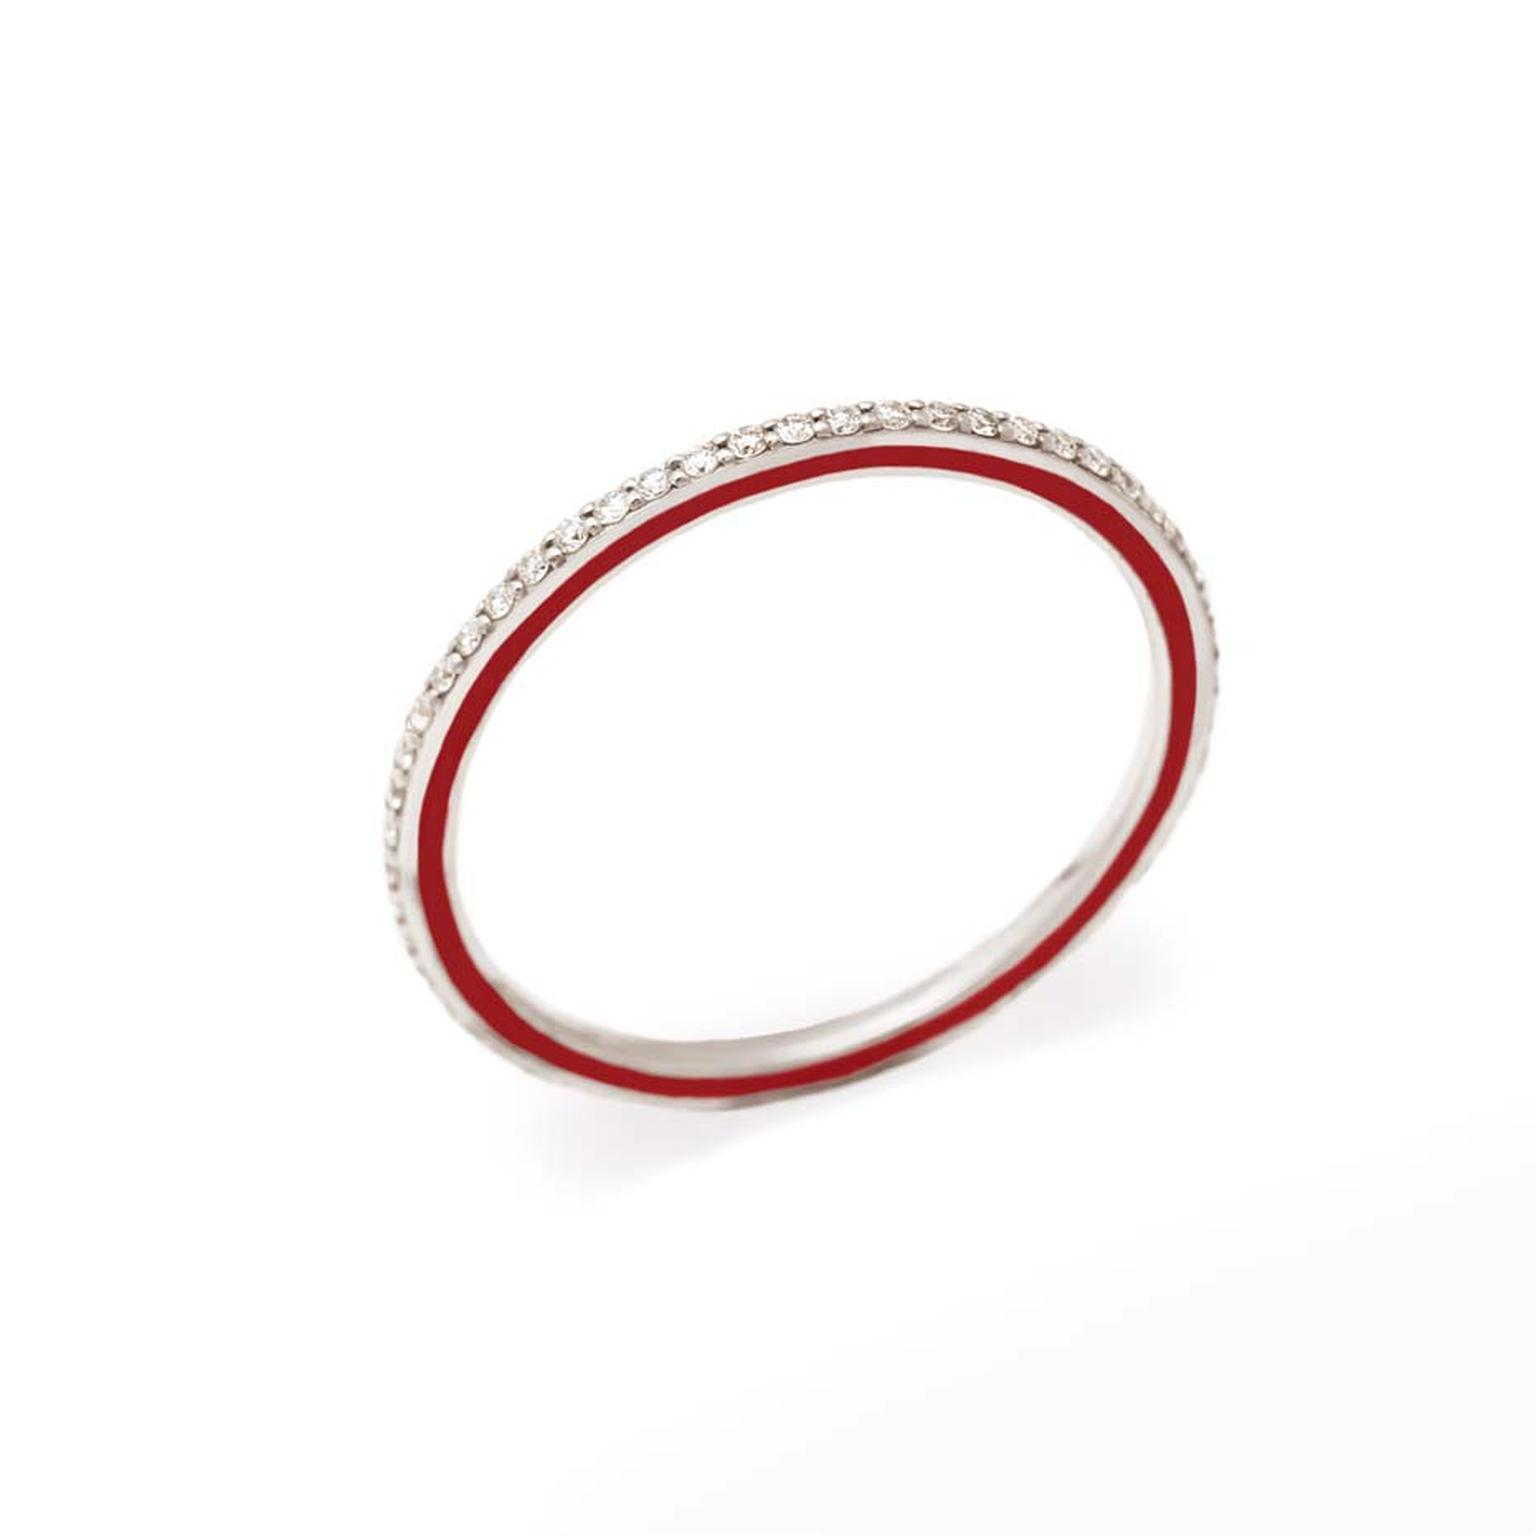 Raphaele Canot Skinny Deco collection white gold ring featuring pavé diamonds and red coral enamel